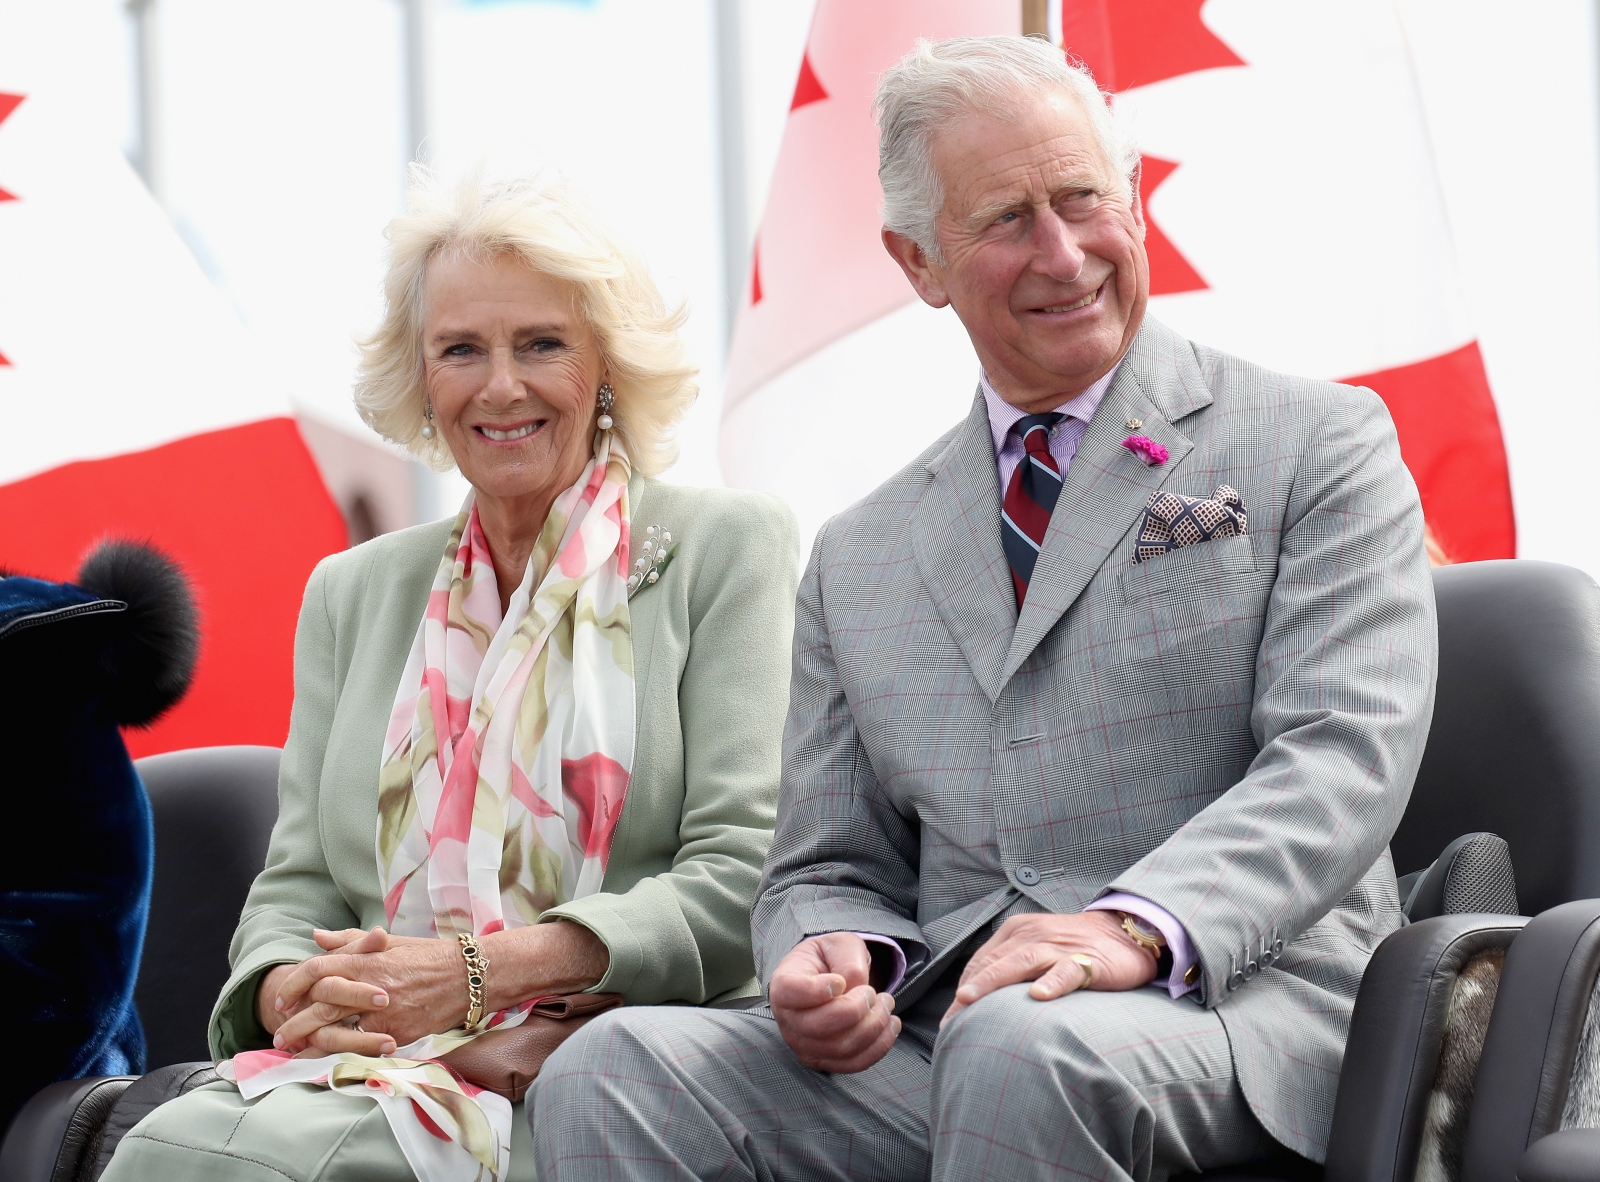 Camilla Parker Bowles >> Prince Charles and Camilla burst into laughter while listening to Inuit throat singing in Canada